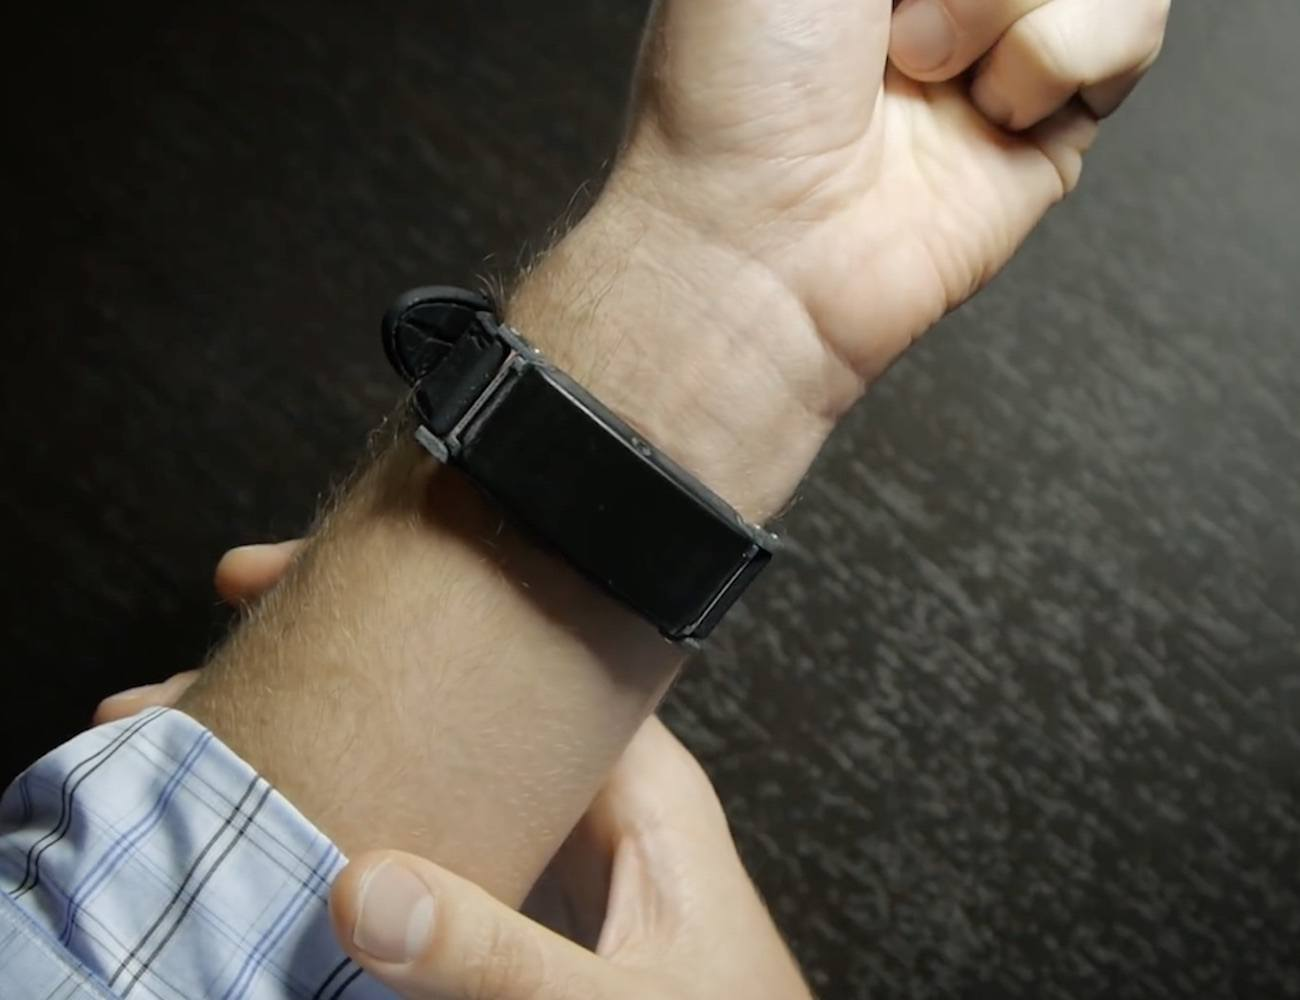 BACtrack Skyn Wearable Alcohol Monitor